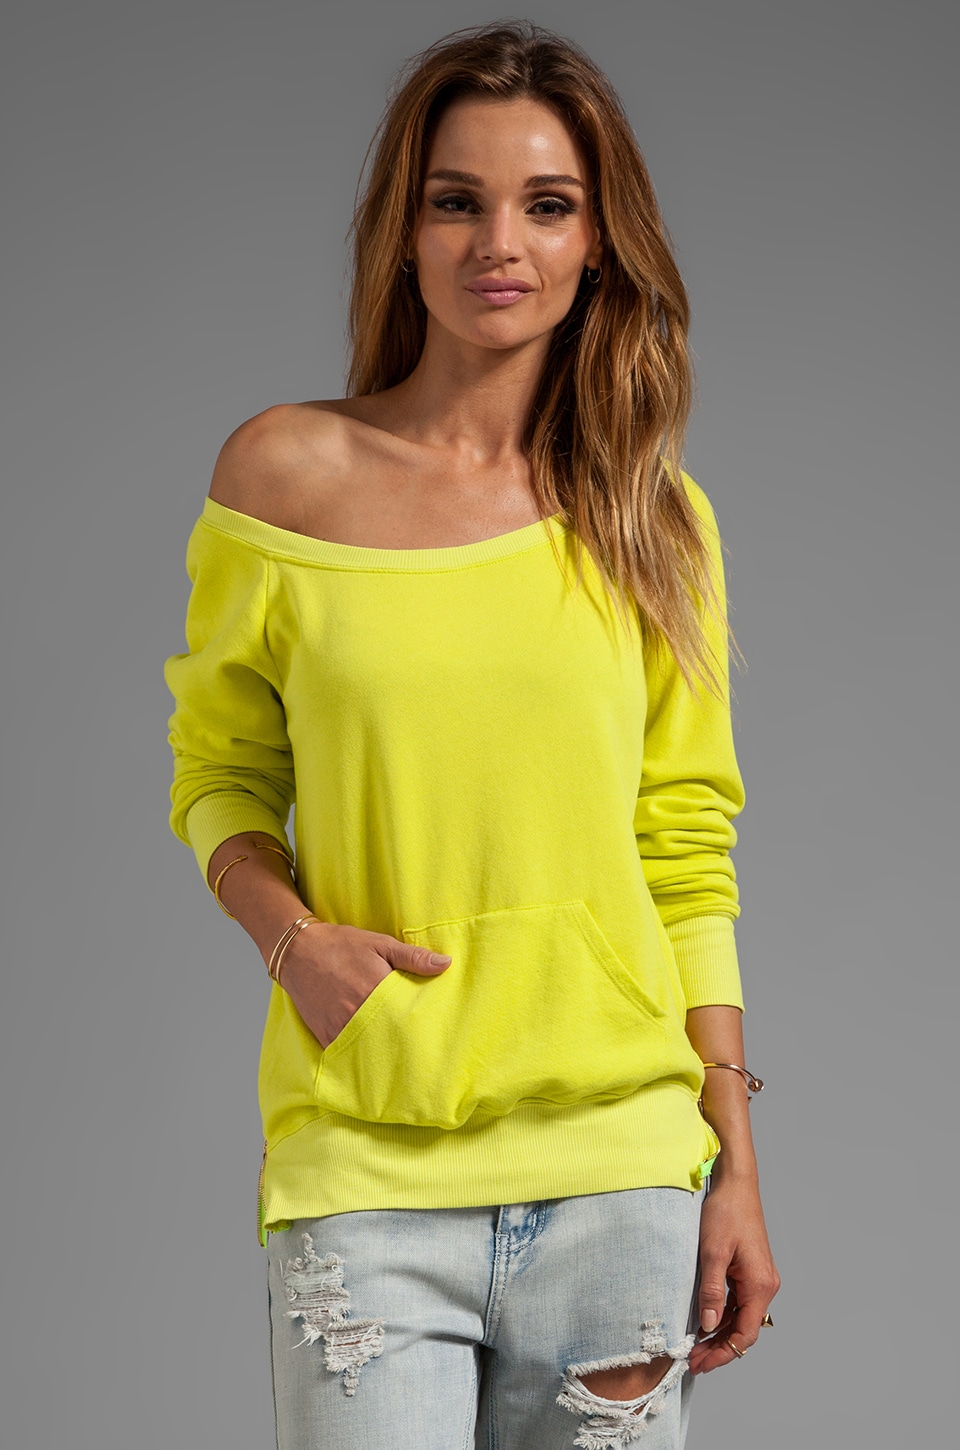 291 Off the Shoulder Sweatshirt with Zips in Tart